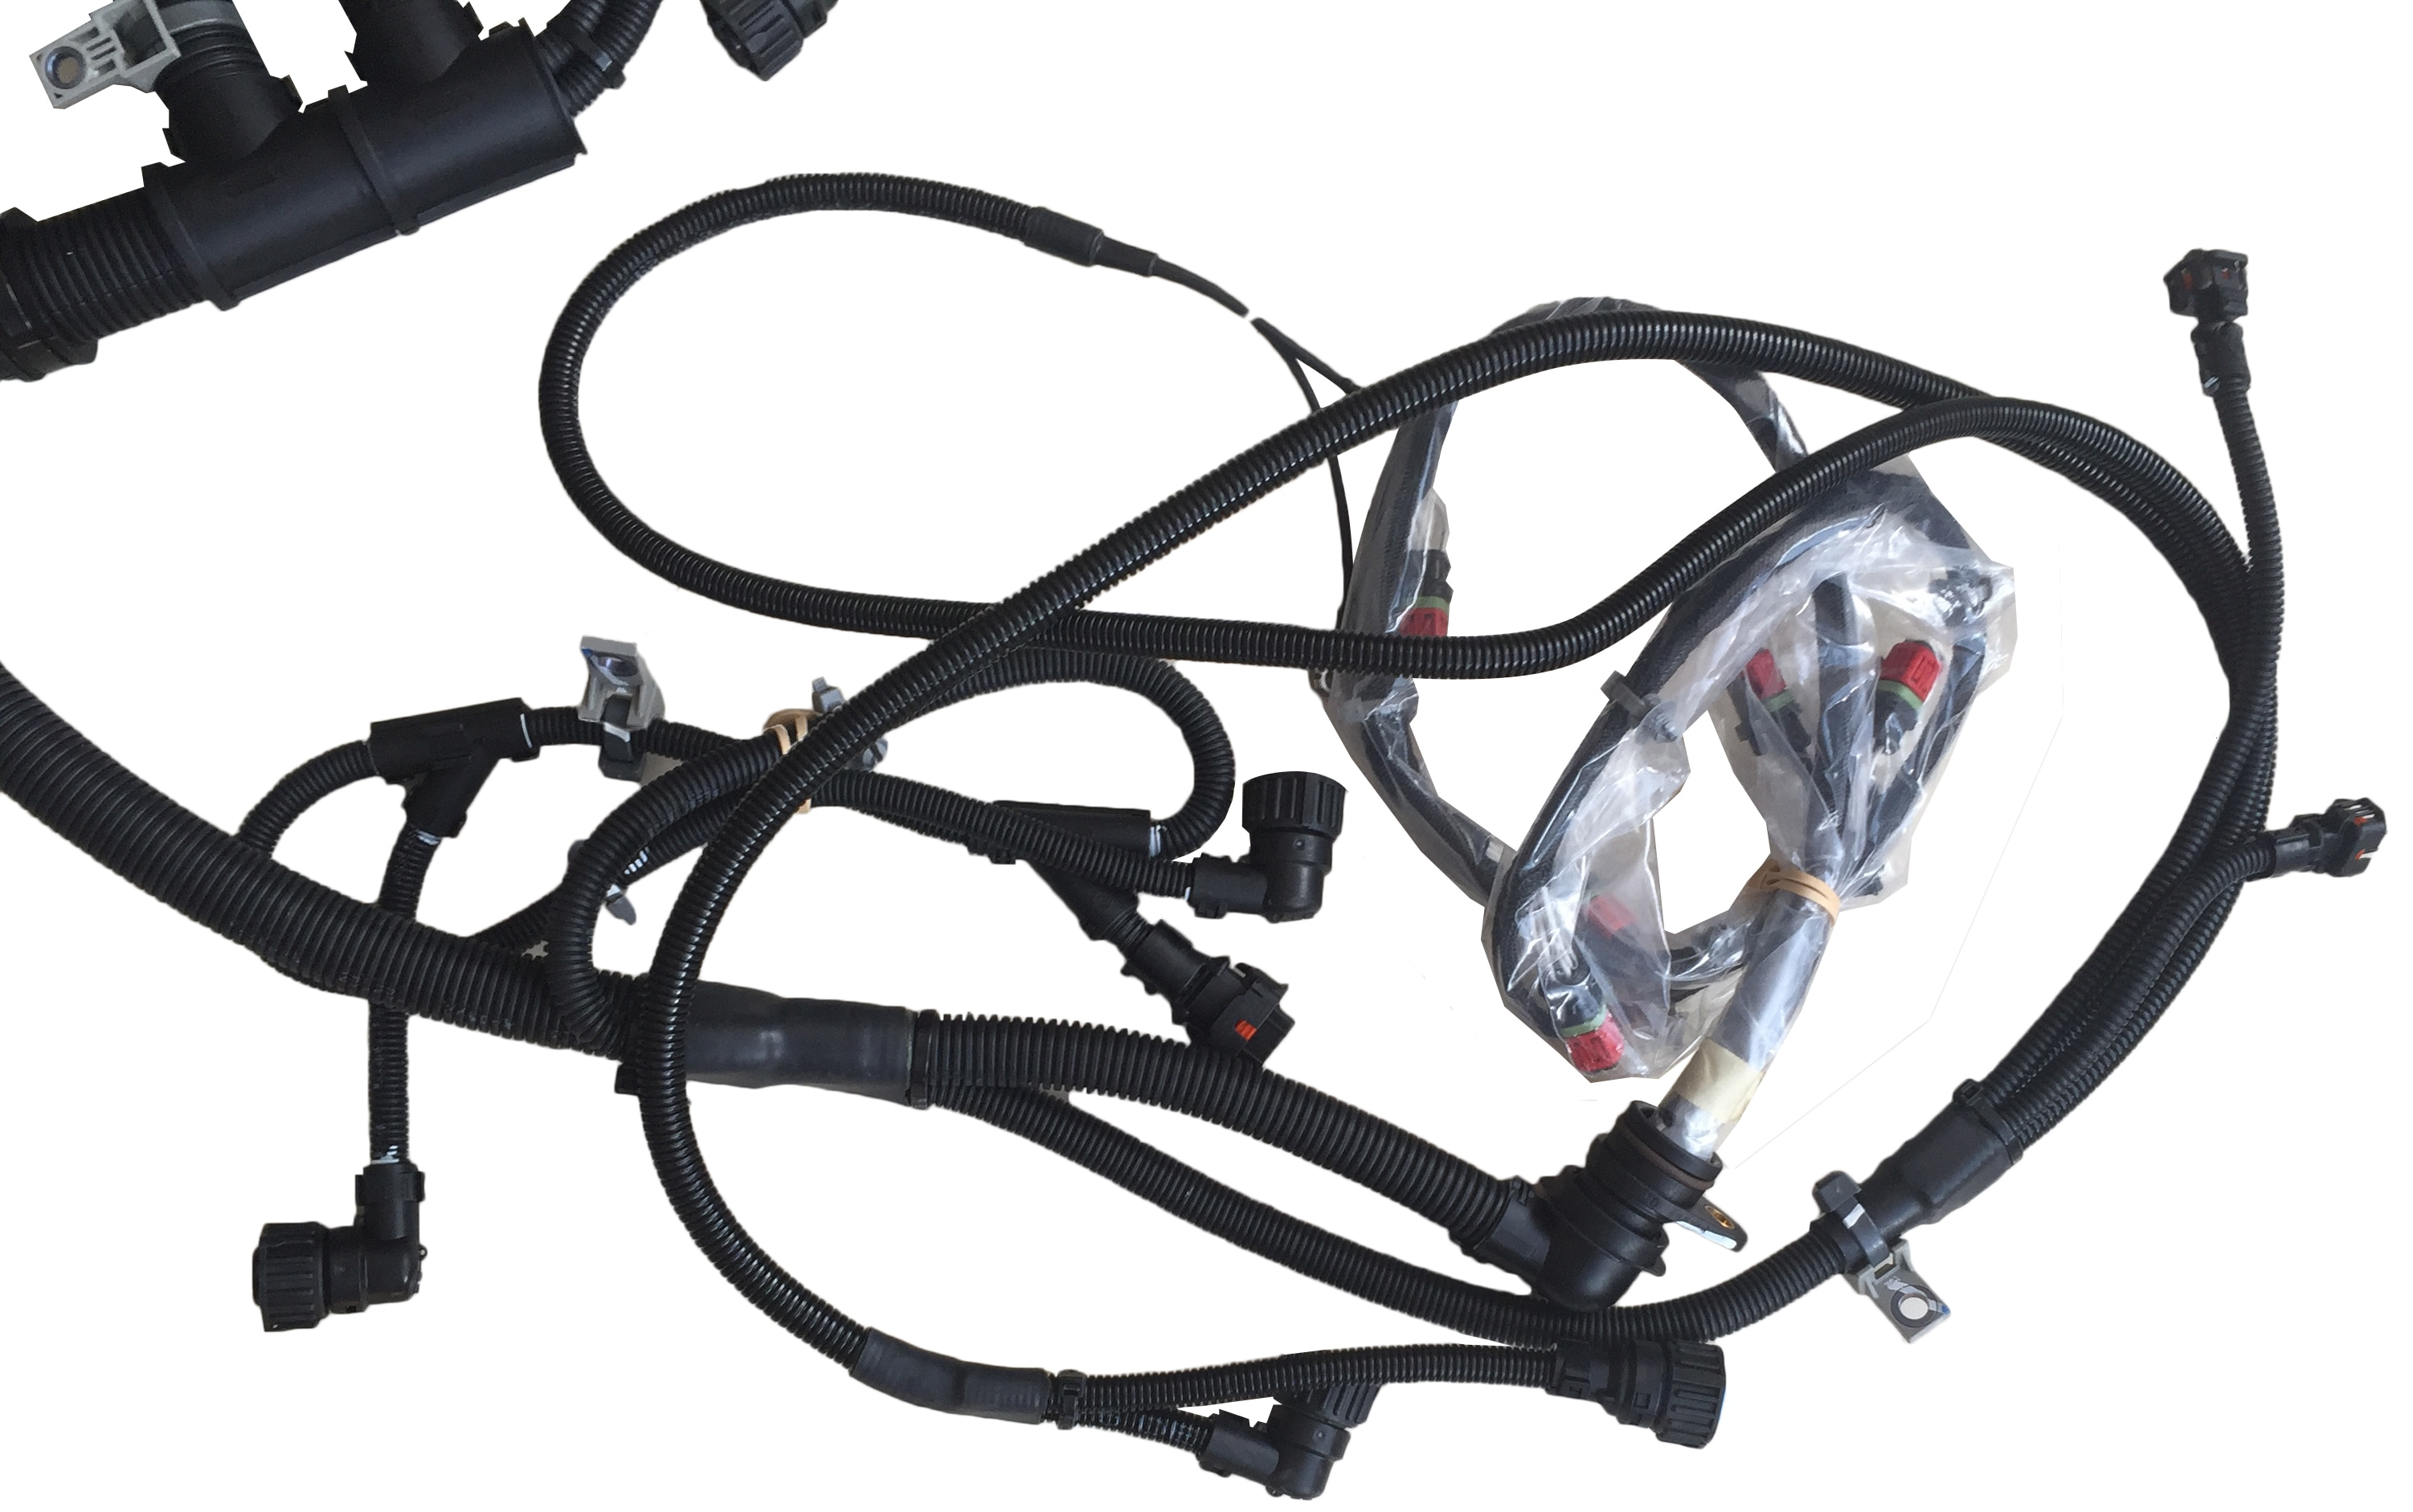 Engine Wiring Cable Harness 7421545827 for RENAULT Heavy Truck Manufacturer High Quality enlarge